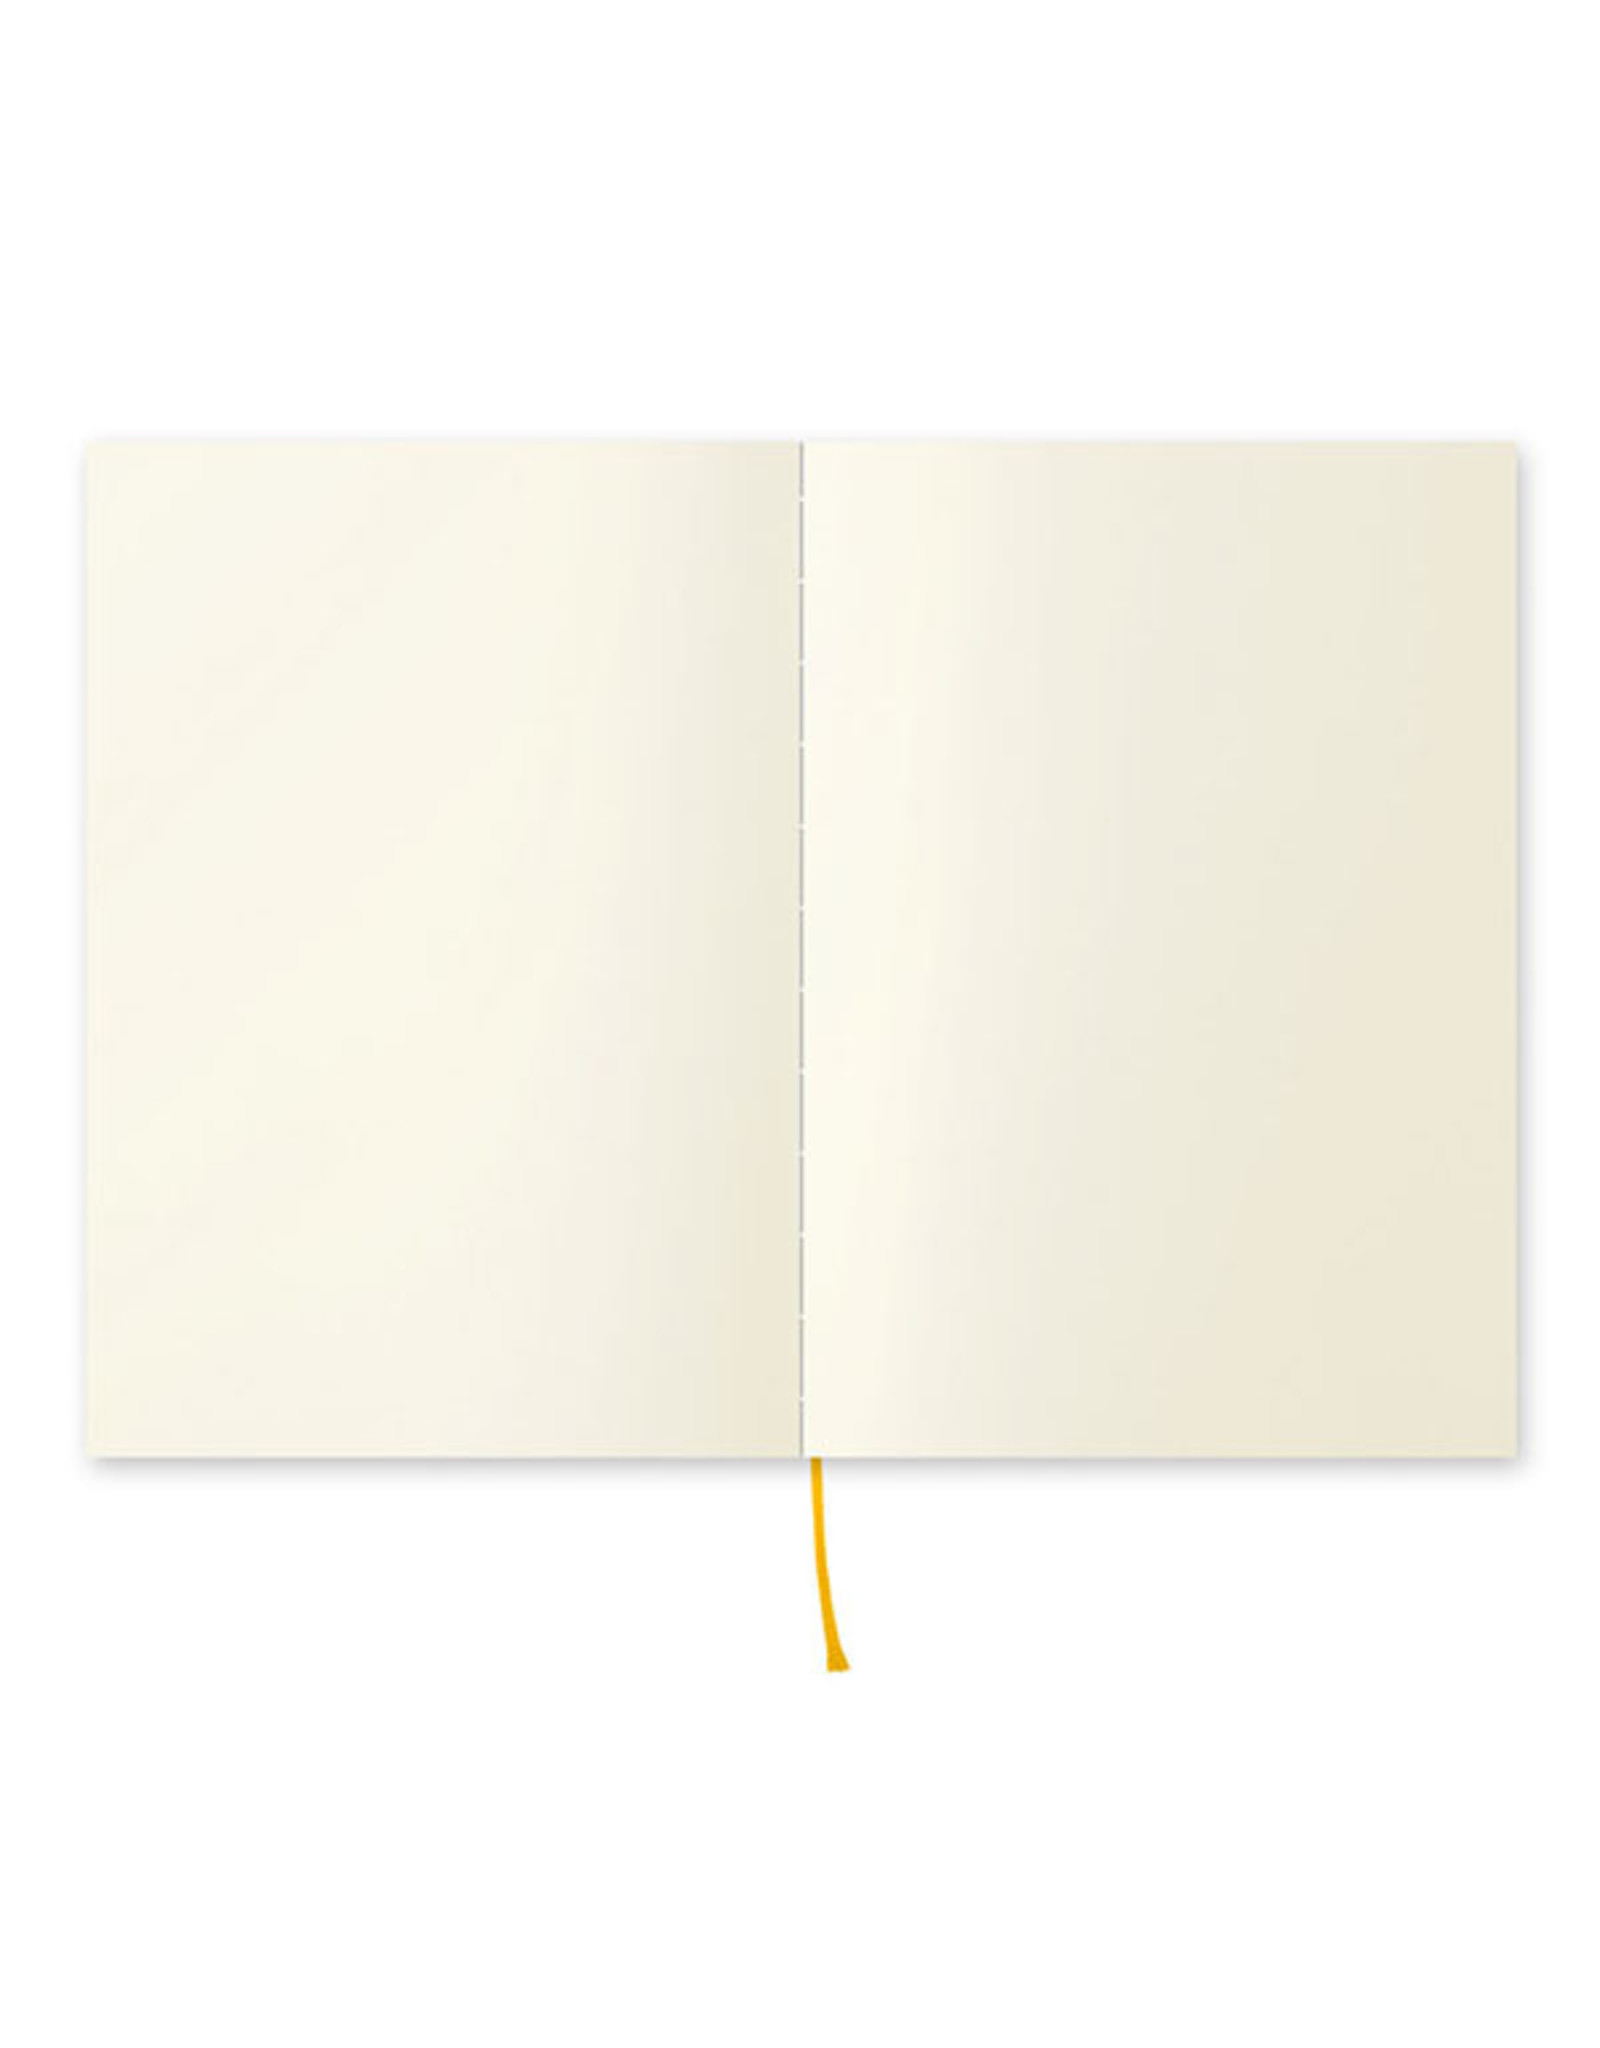 Designphil Inc. MD NOTEBOOK A5 BLANK ENGLISH SLEEVE